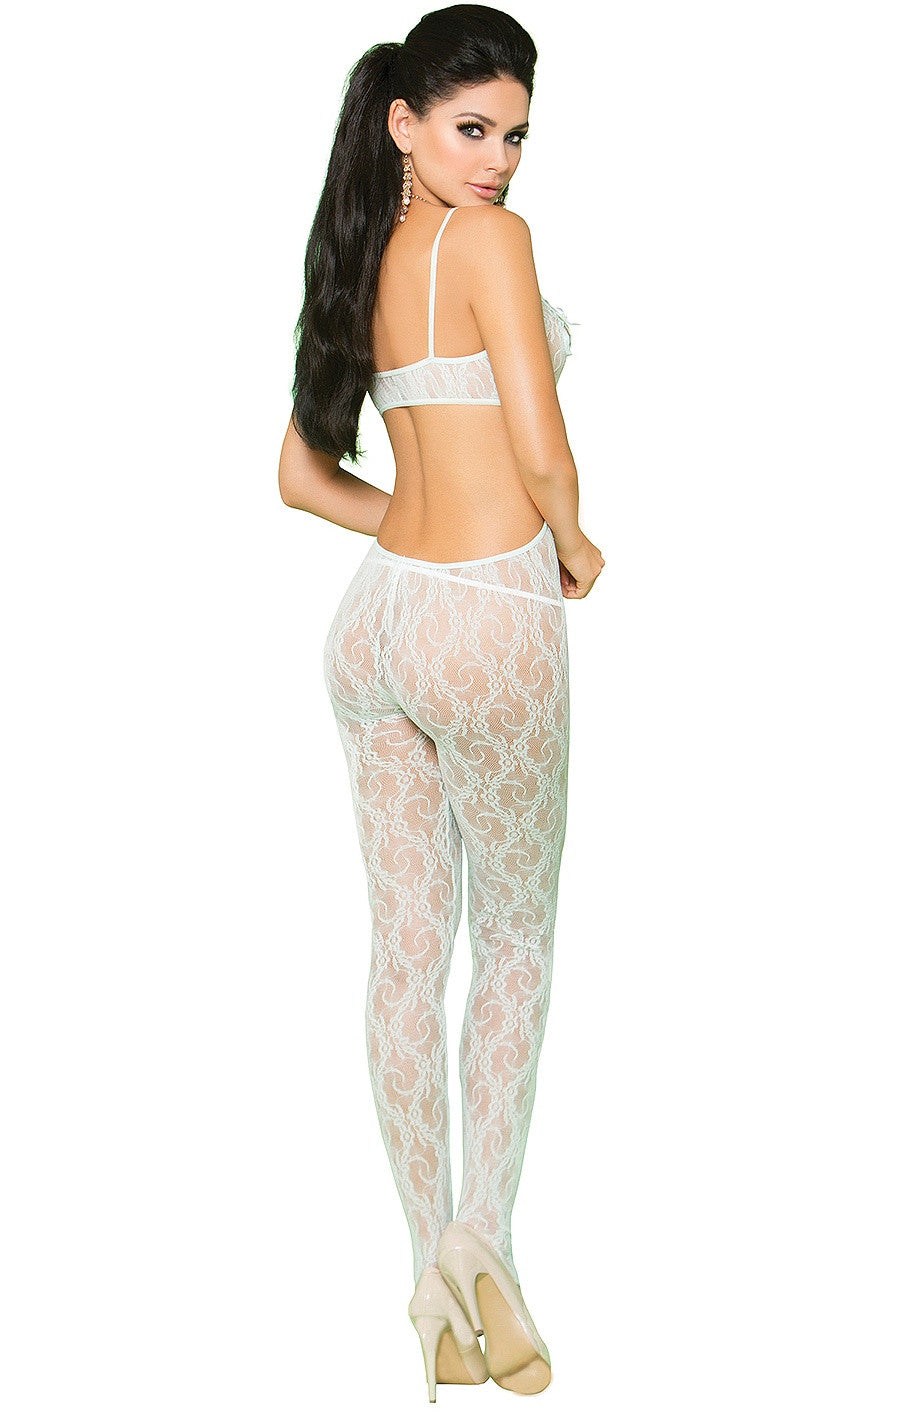 EM-81227 Glam mint green bodystocking - Sexylingerieland  - 2